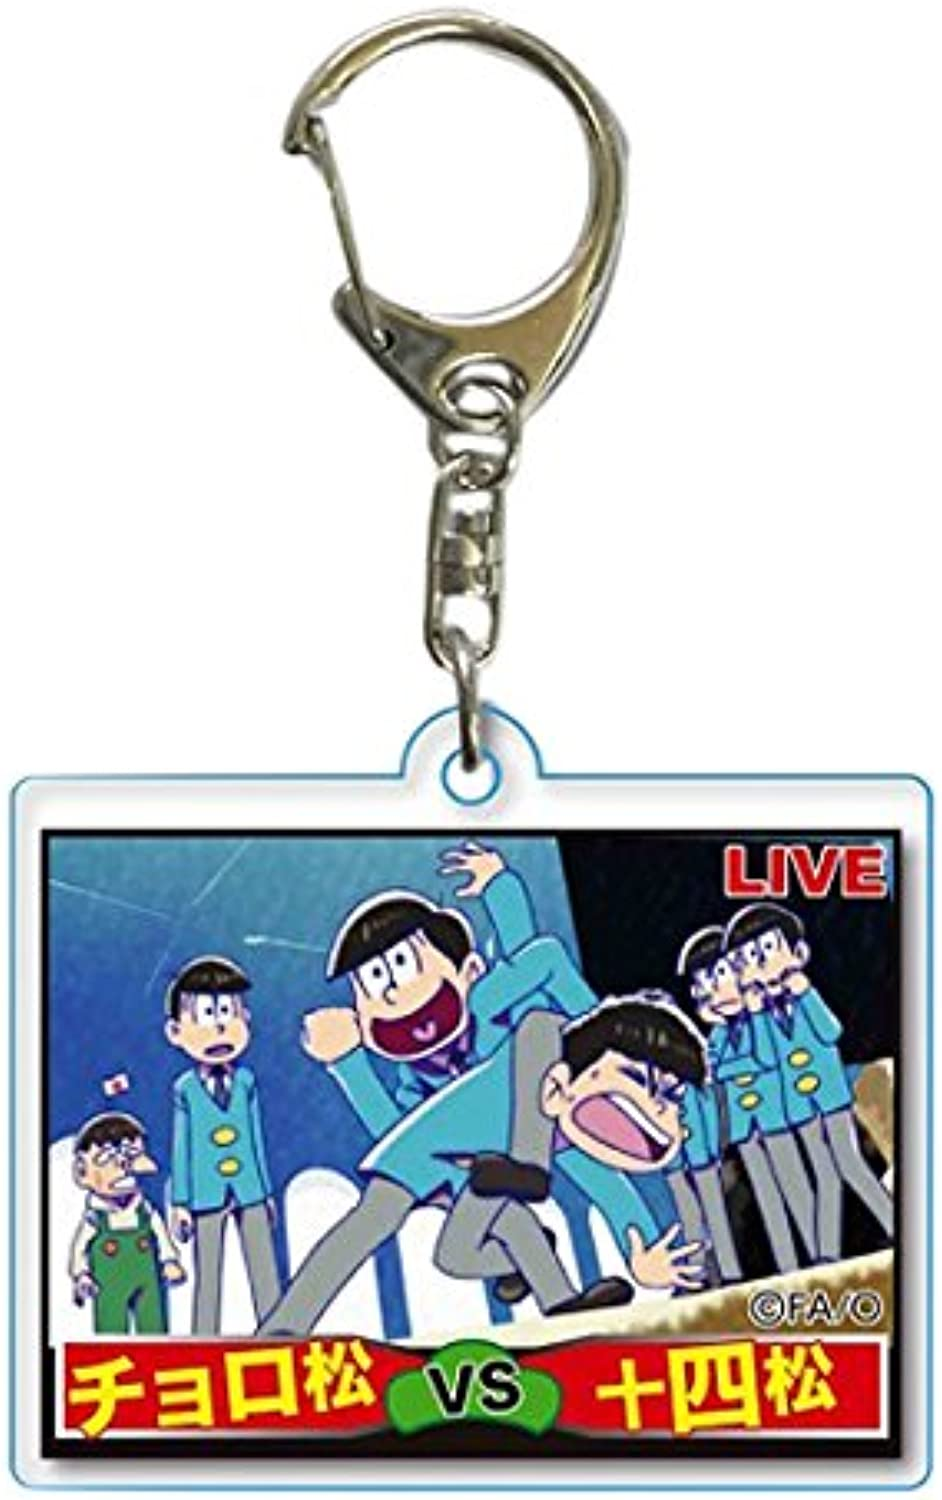 Perhaps pine's wrestling scene B acrylic key ring